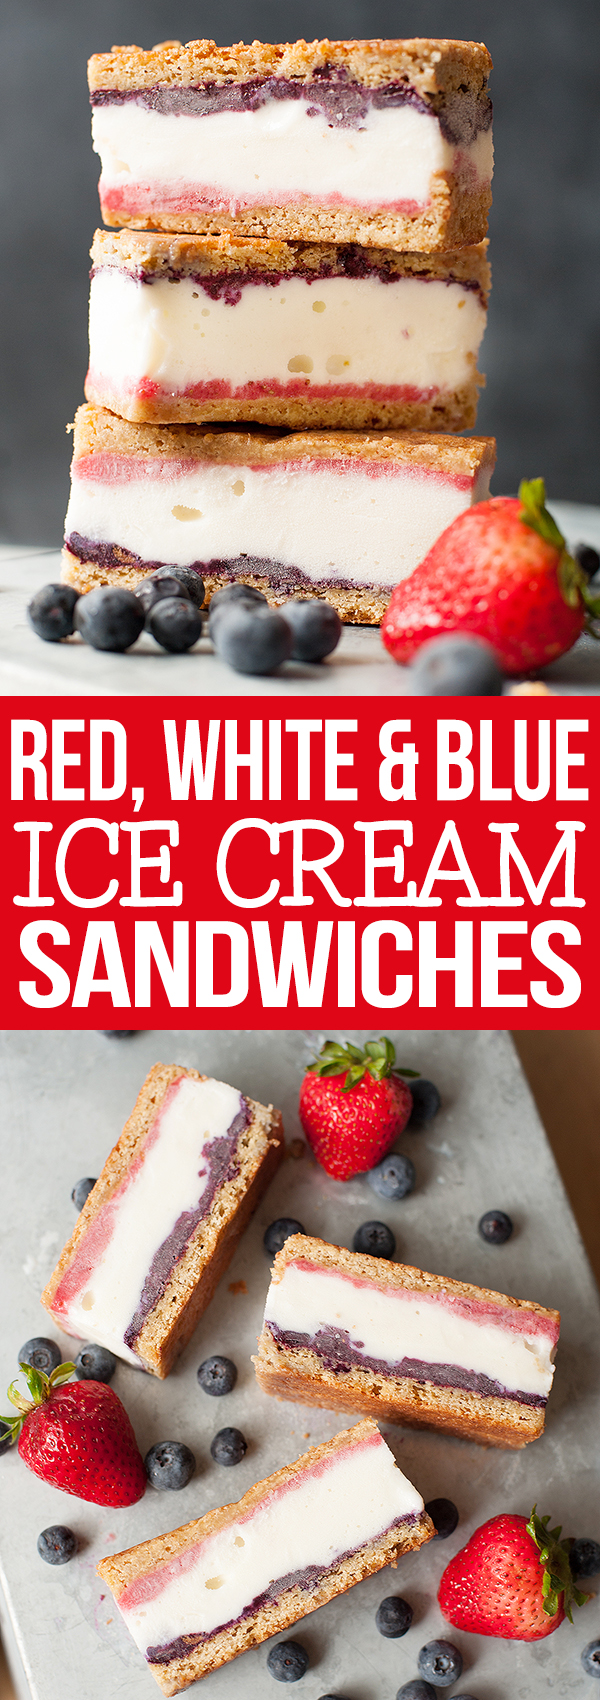 strawberry_blueberry_ice_cream_sandwiches_for_the_4th_pin